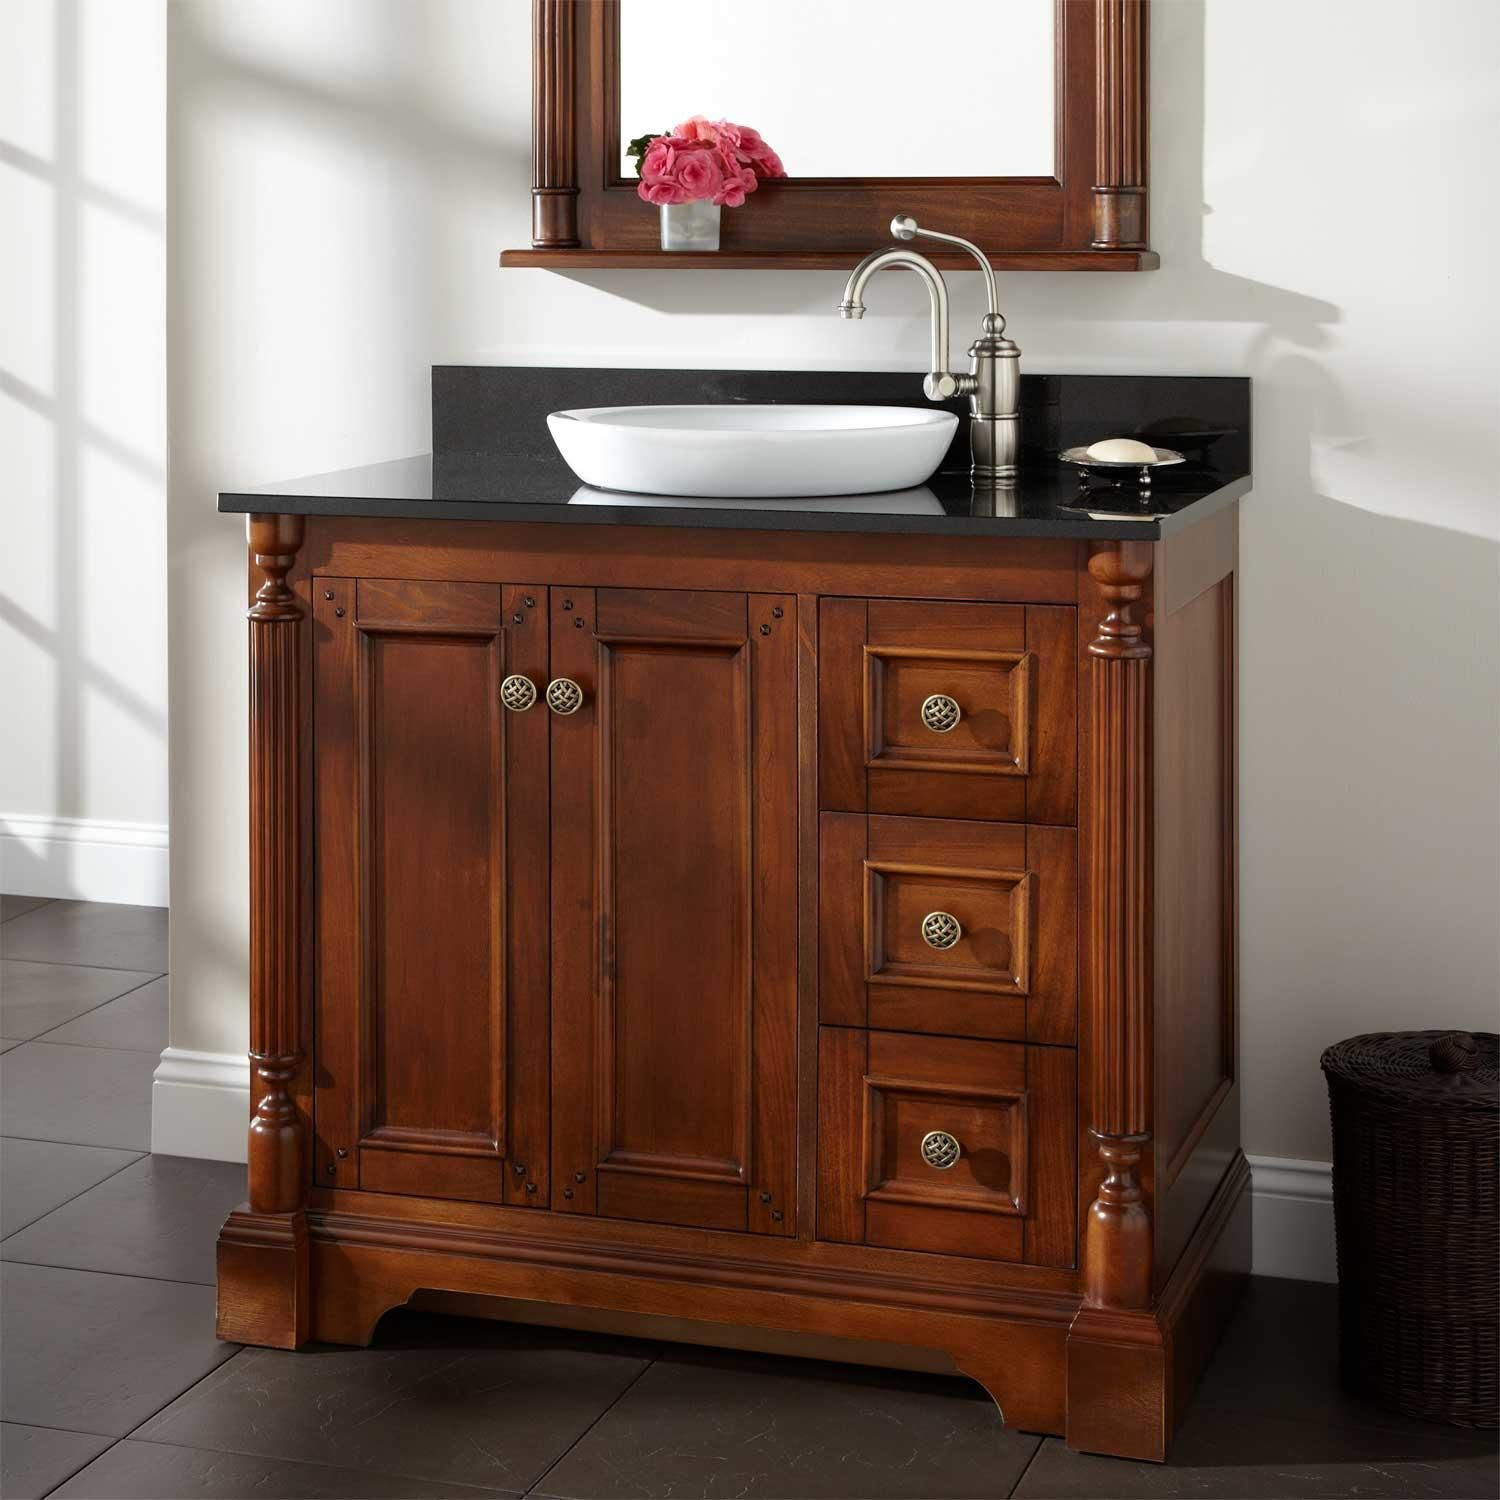 in unit bath double oak white lowes ideas catchy w bathroom ashburn less top sinks sink clearance floating full design of with x for vanities size china foremost vanity p vitreous cabinets lights mahogany worthington inch